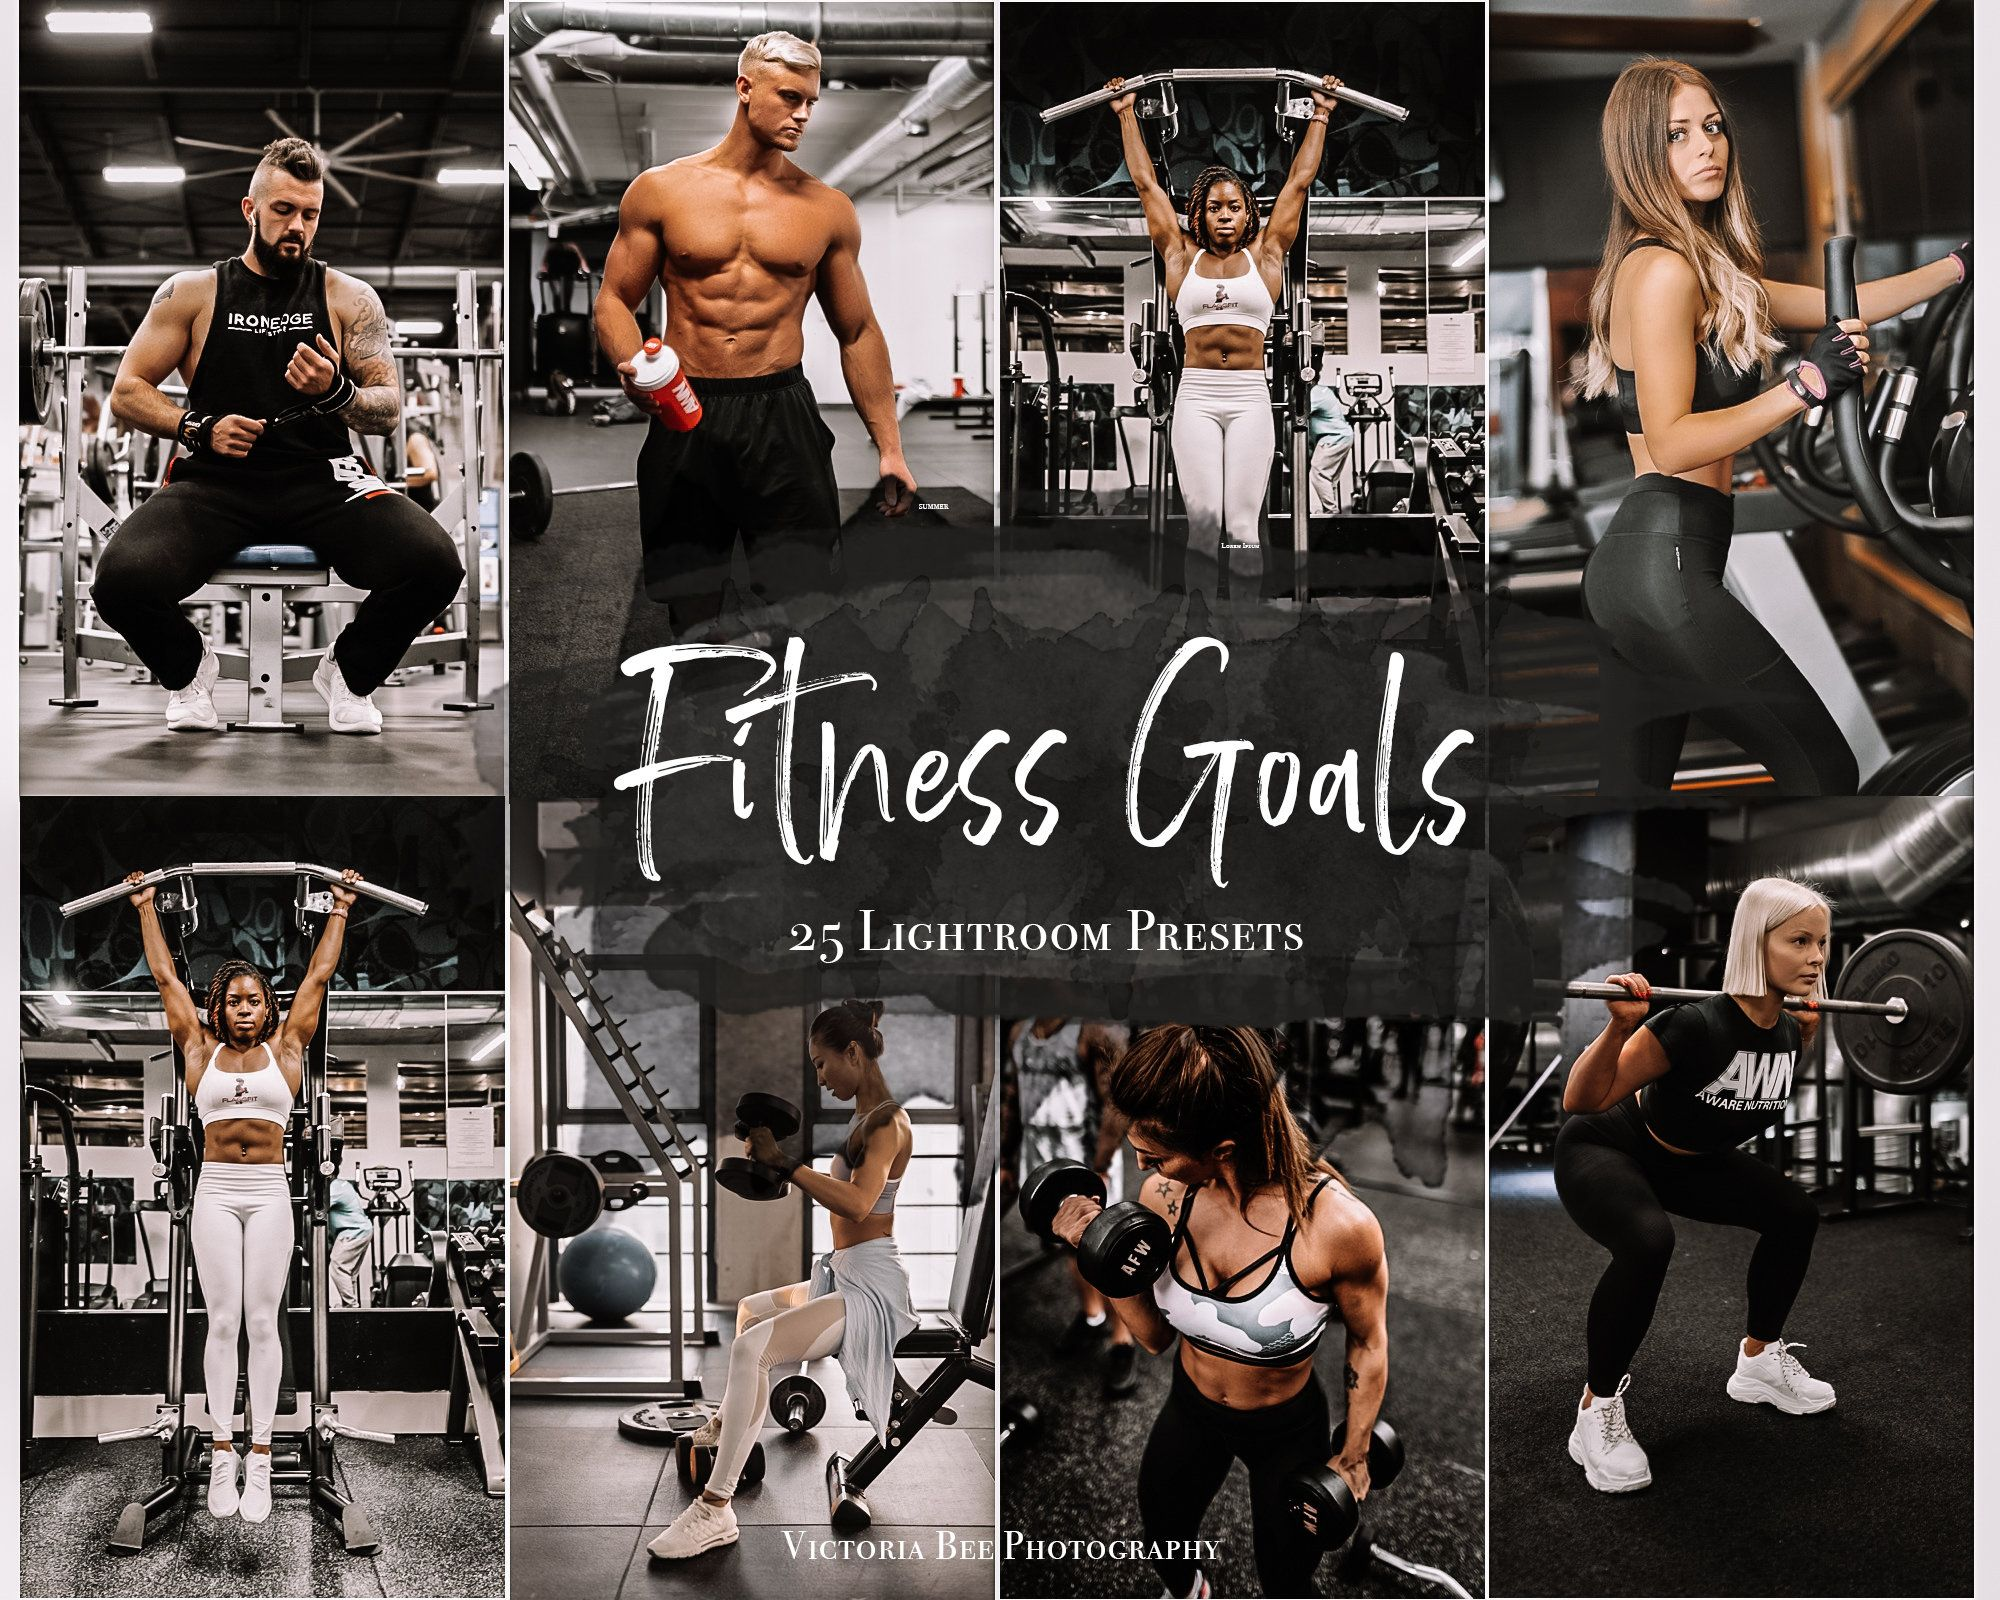 25 Fitness Lightroom Presets Gym Instagram Filter Moody Workout Presets For Mobile Lightroom Crossfit Photo Editing Couples Fitness Photography Workout Pictures Fitness Instagram